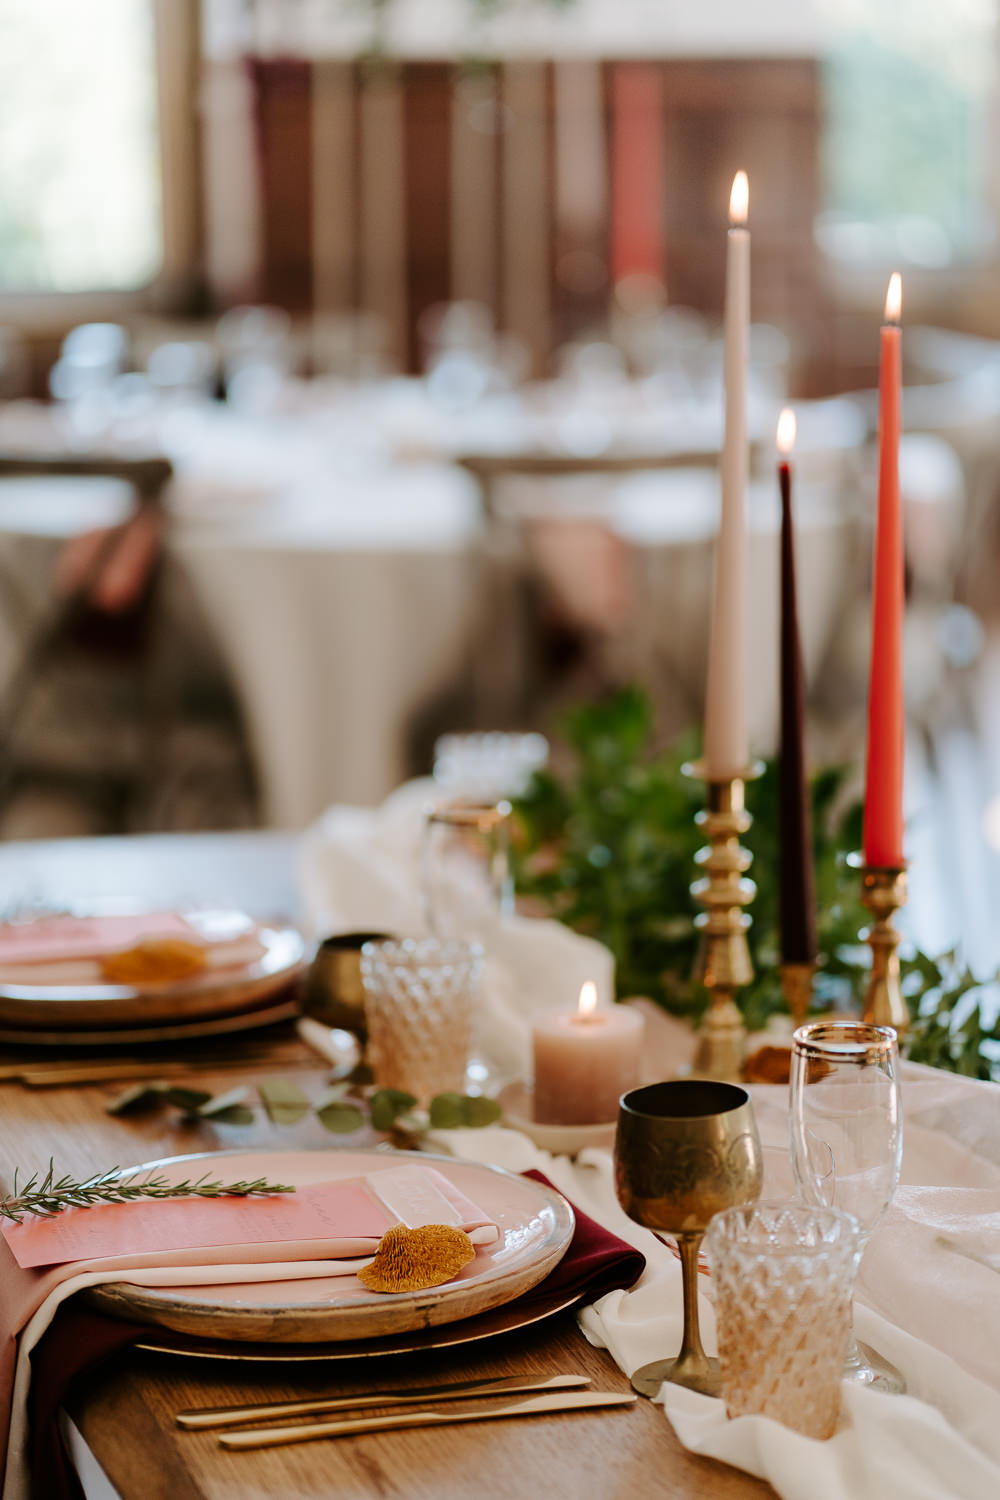 Candlesticks Decor Table Coral Contemporary Wedding Ideas Chloe Ely Photography